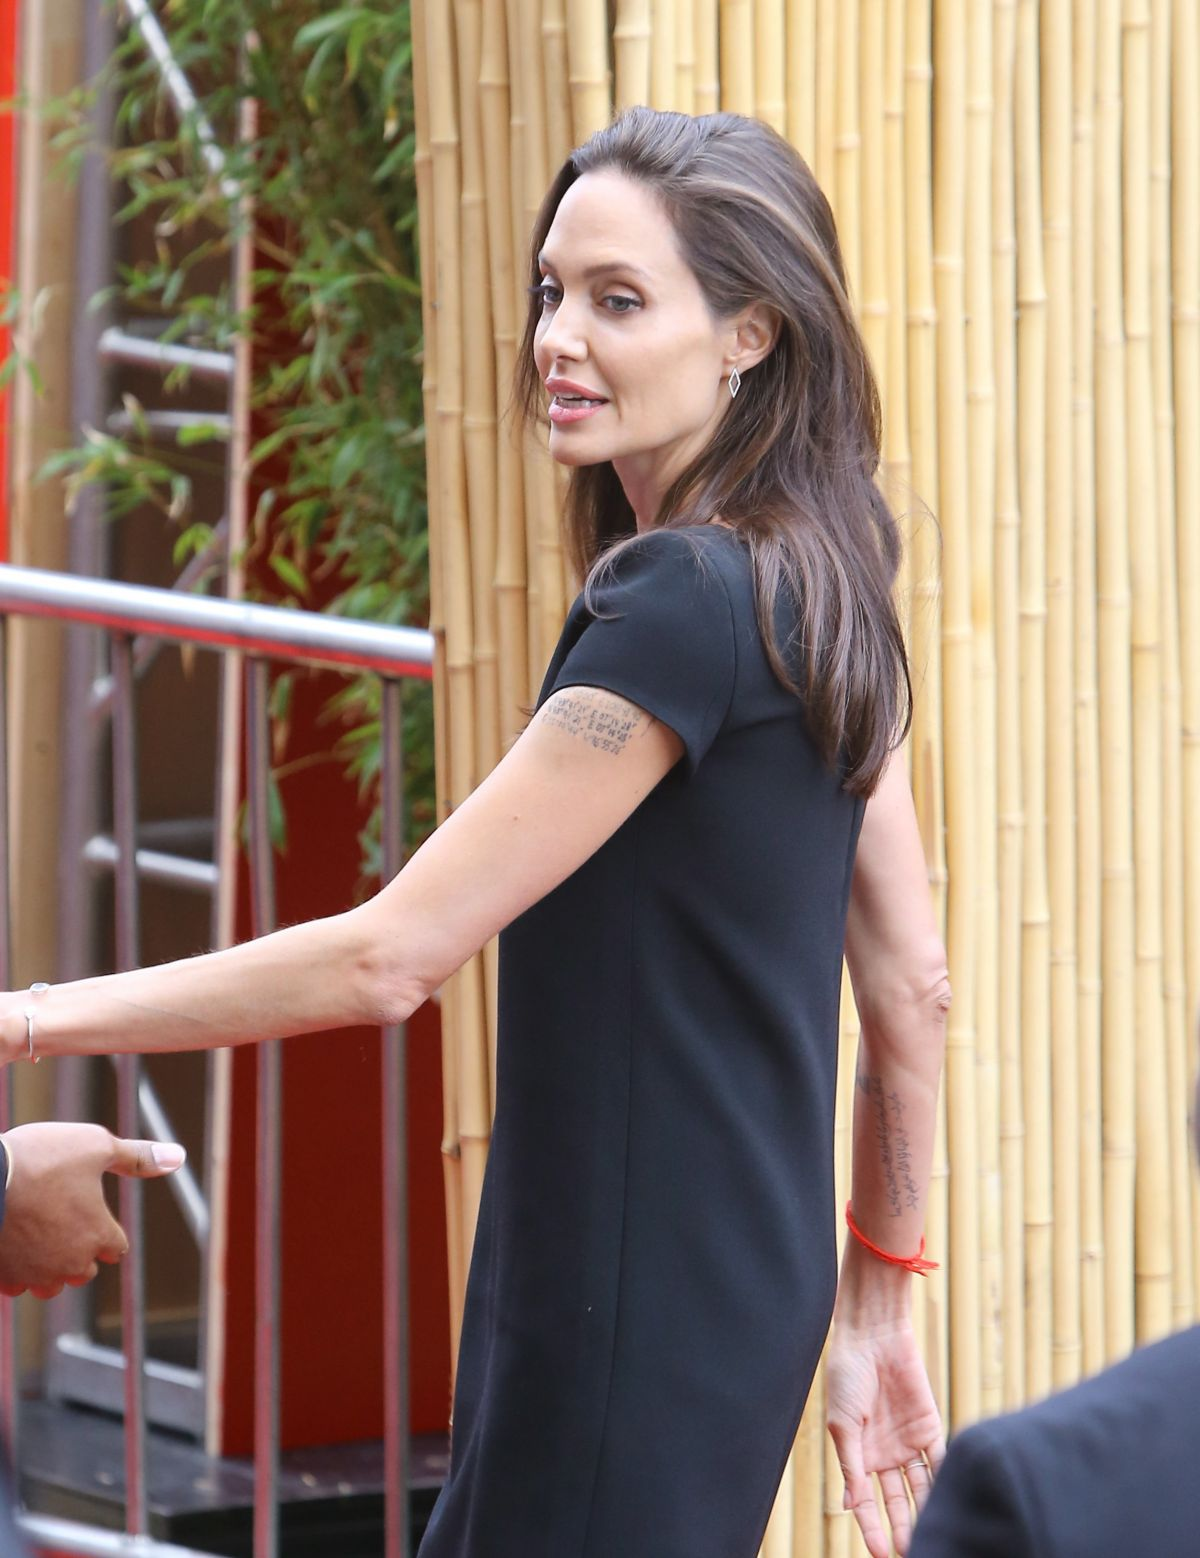 ANGELINA JOLIE Arrives at Kung Fu Panda 3 Premiere in Hollywood 01/16/2016